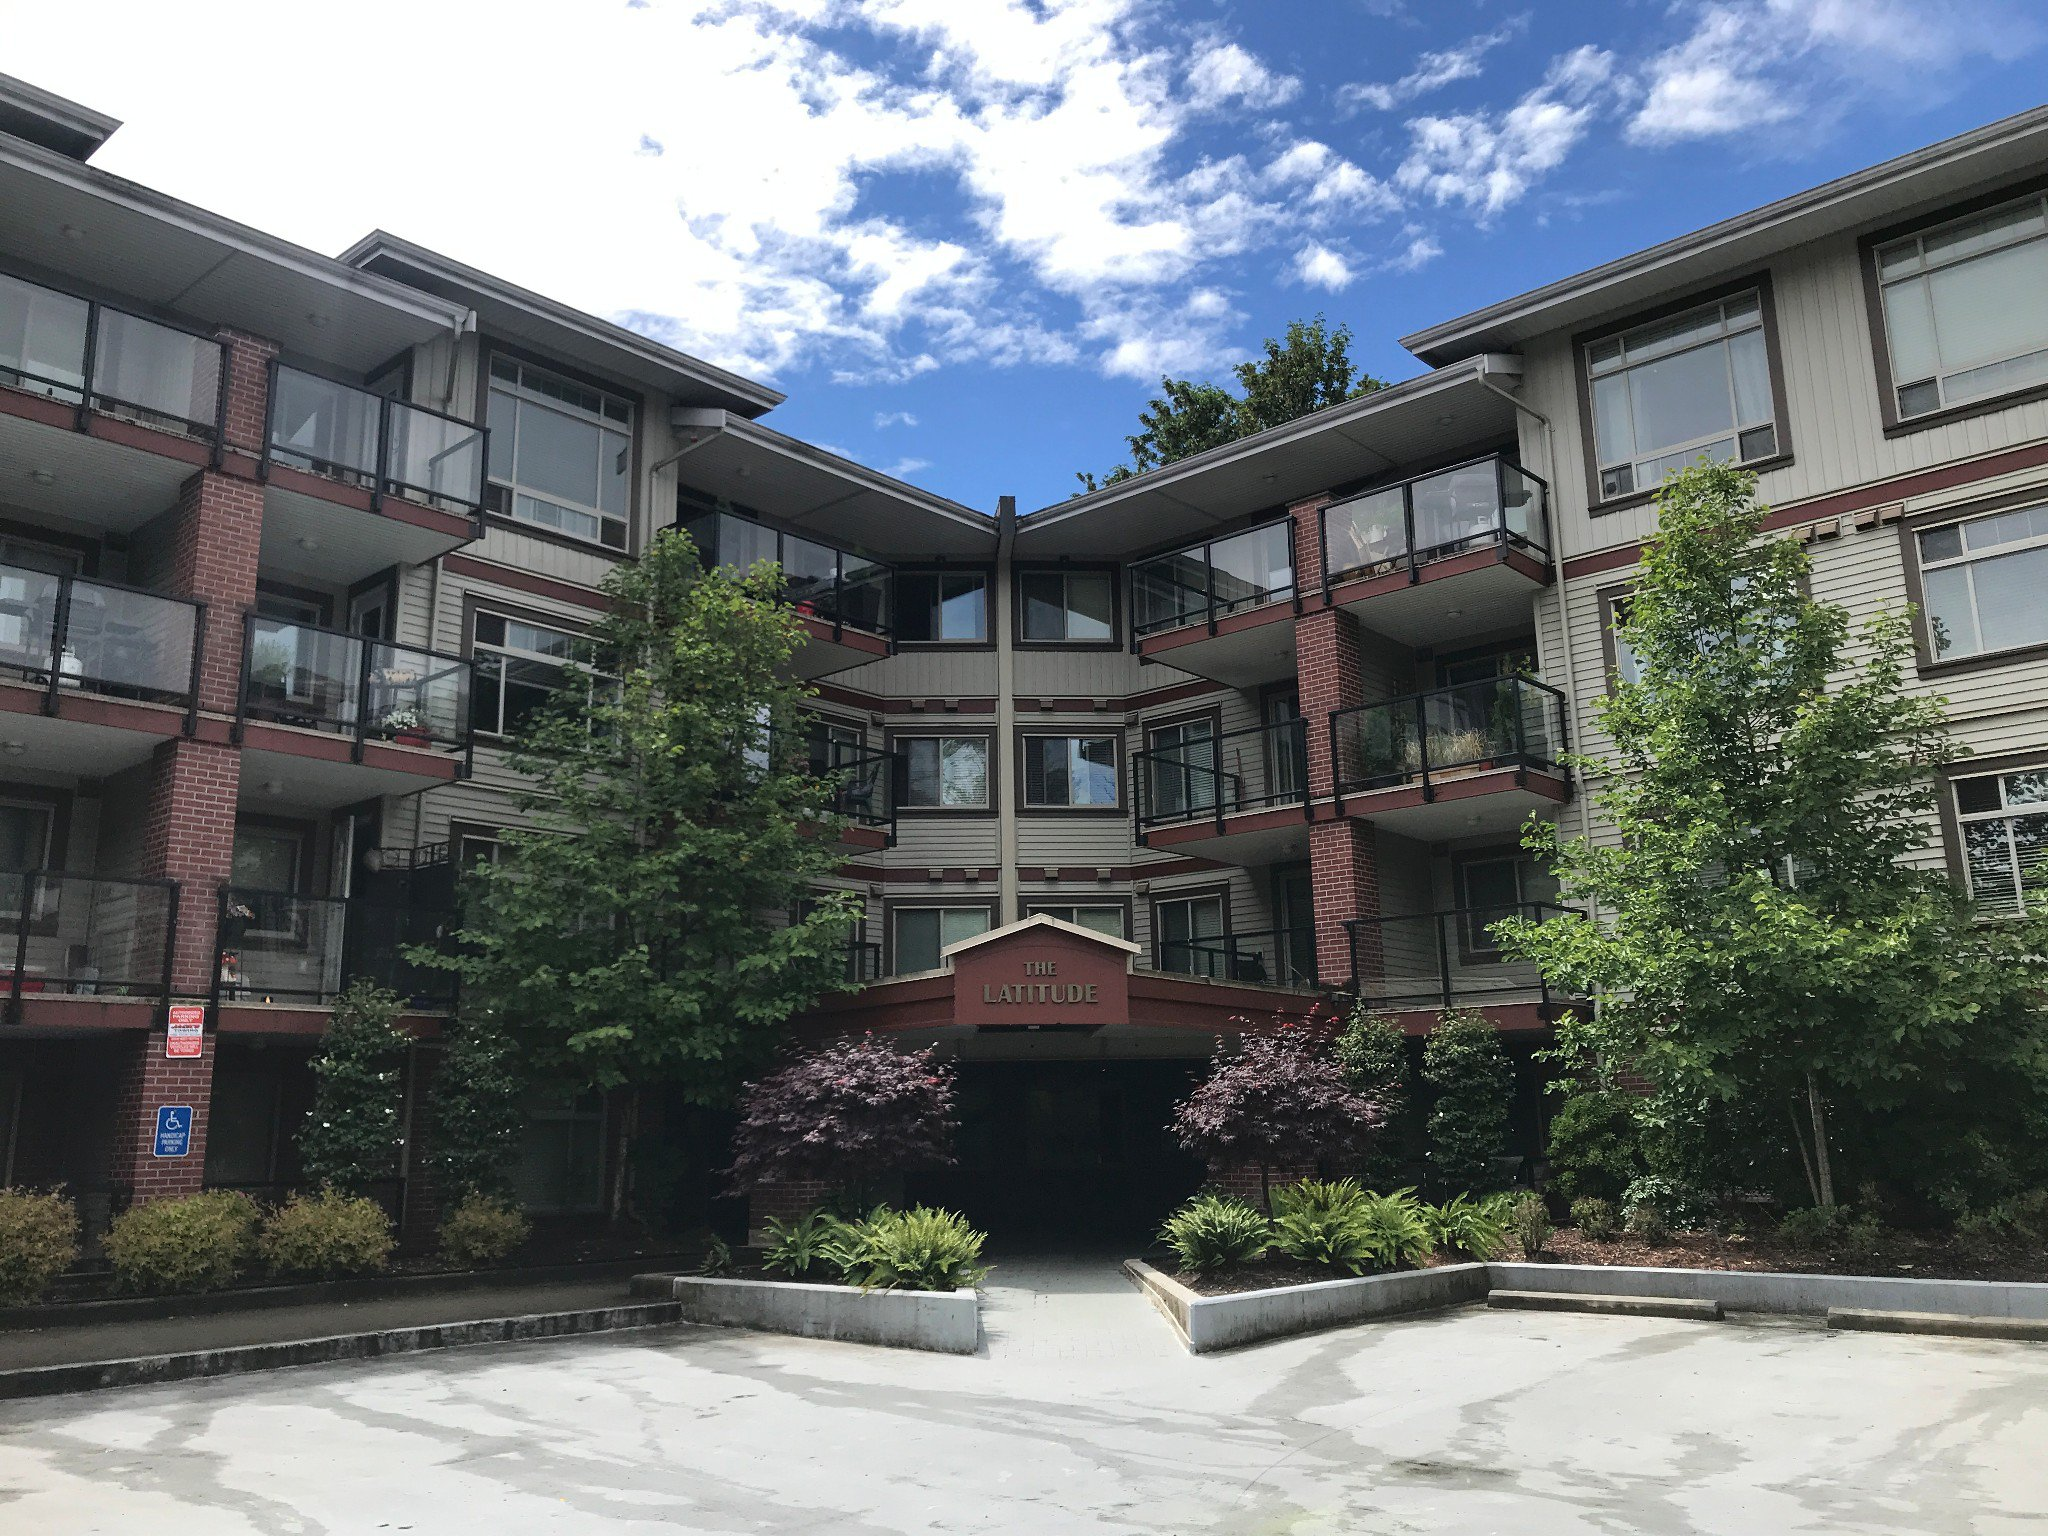 Main Photo: #112 2233 McKenzie Rd. in Abbotsford: Central Abbotsford Condo for rent